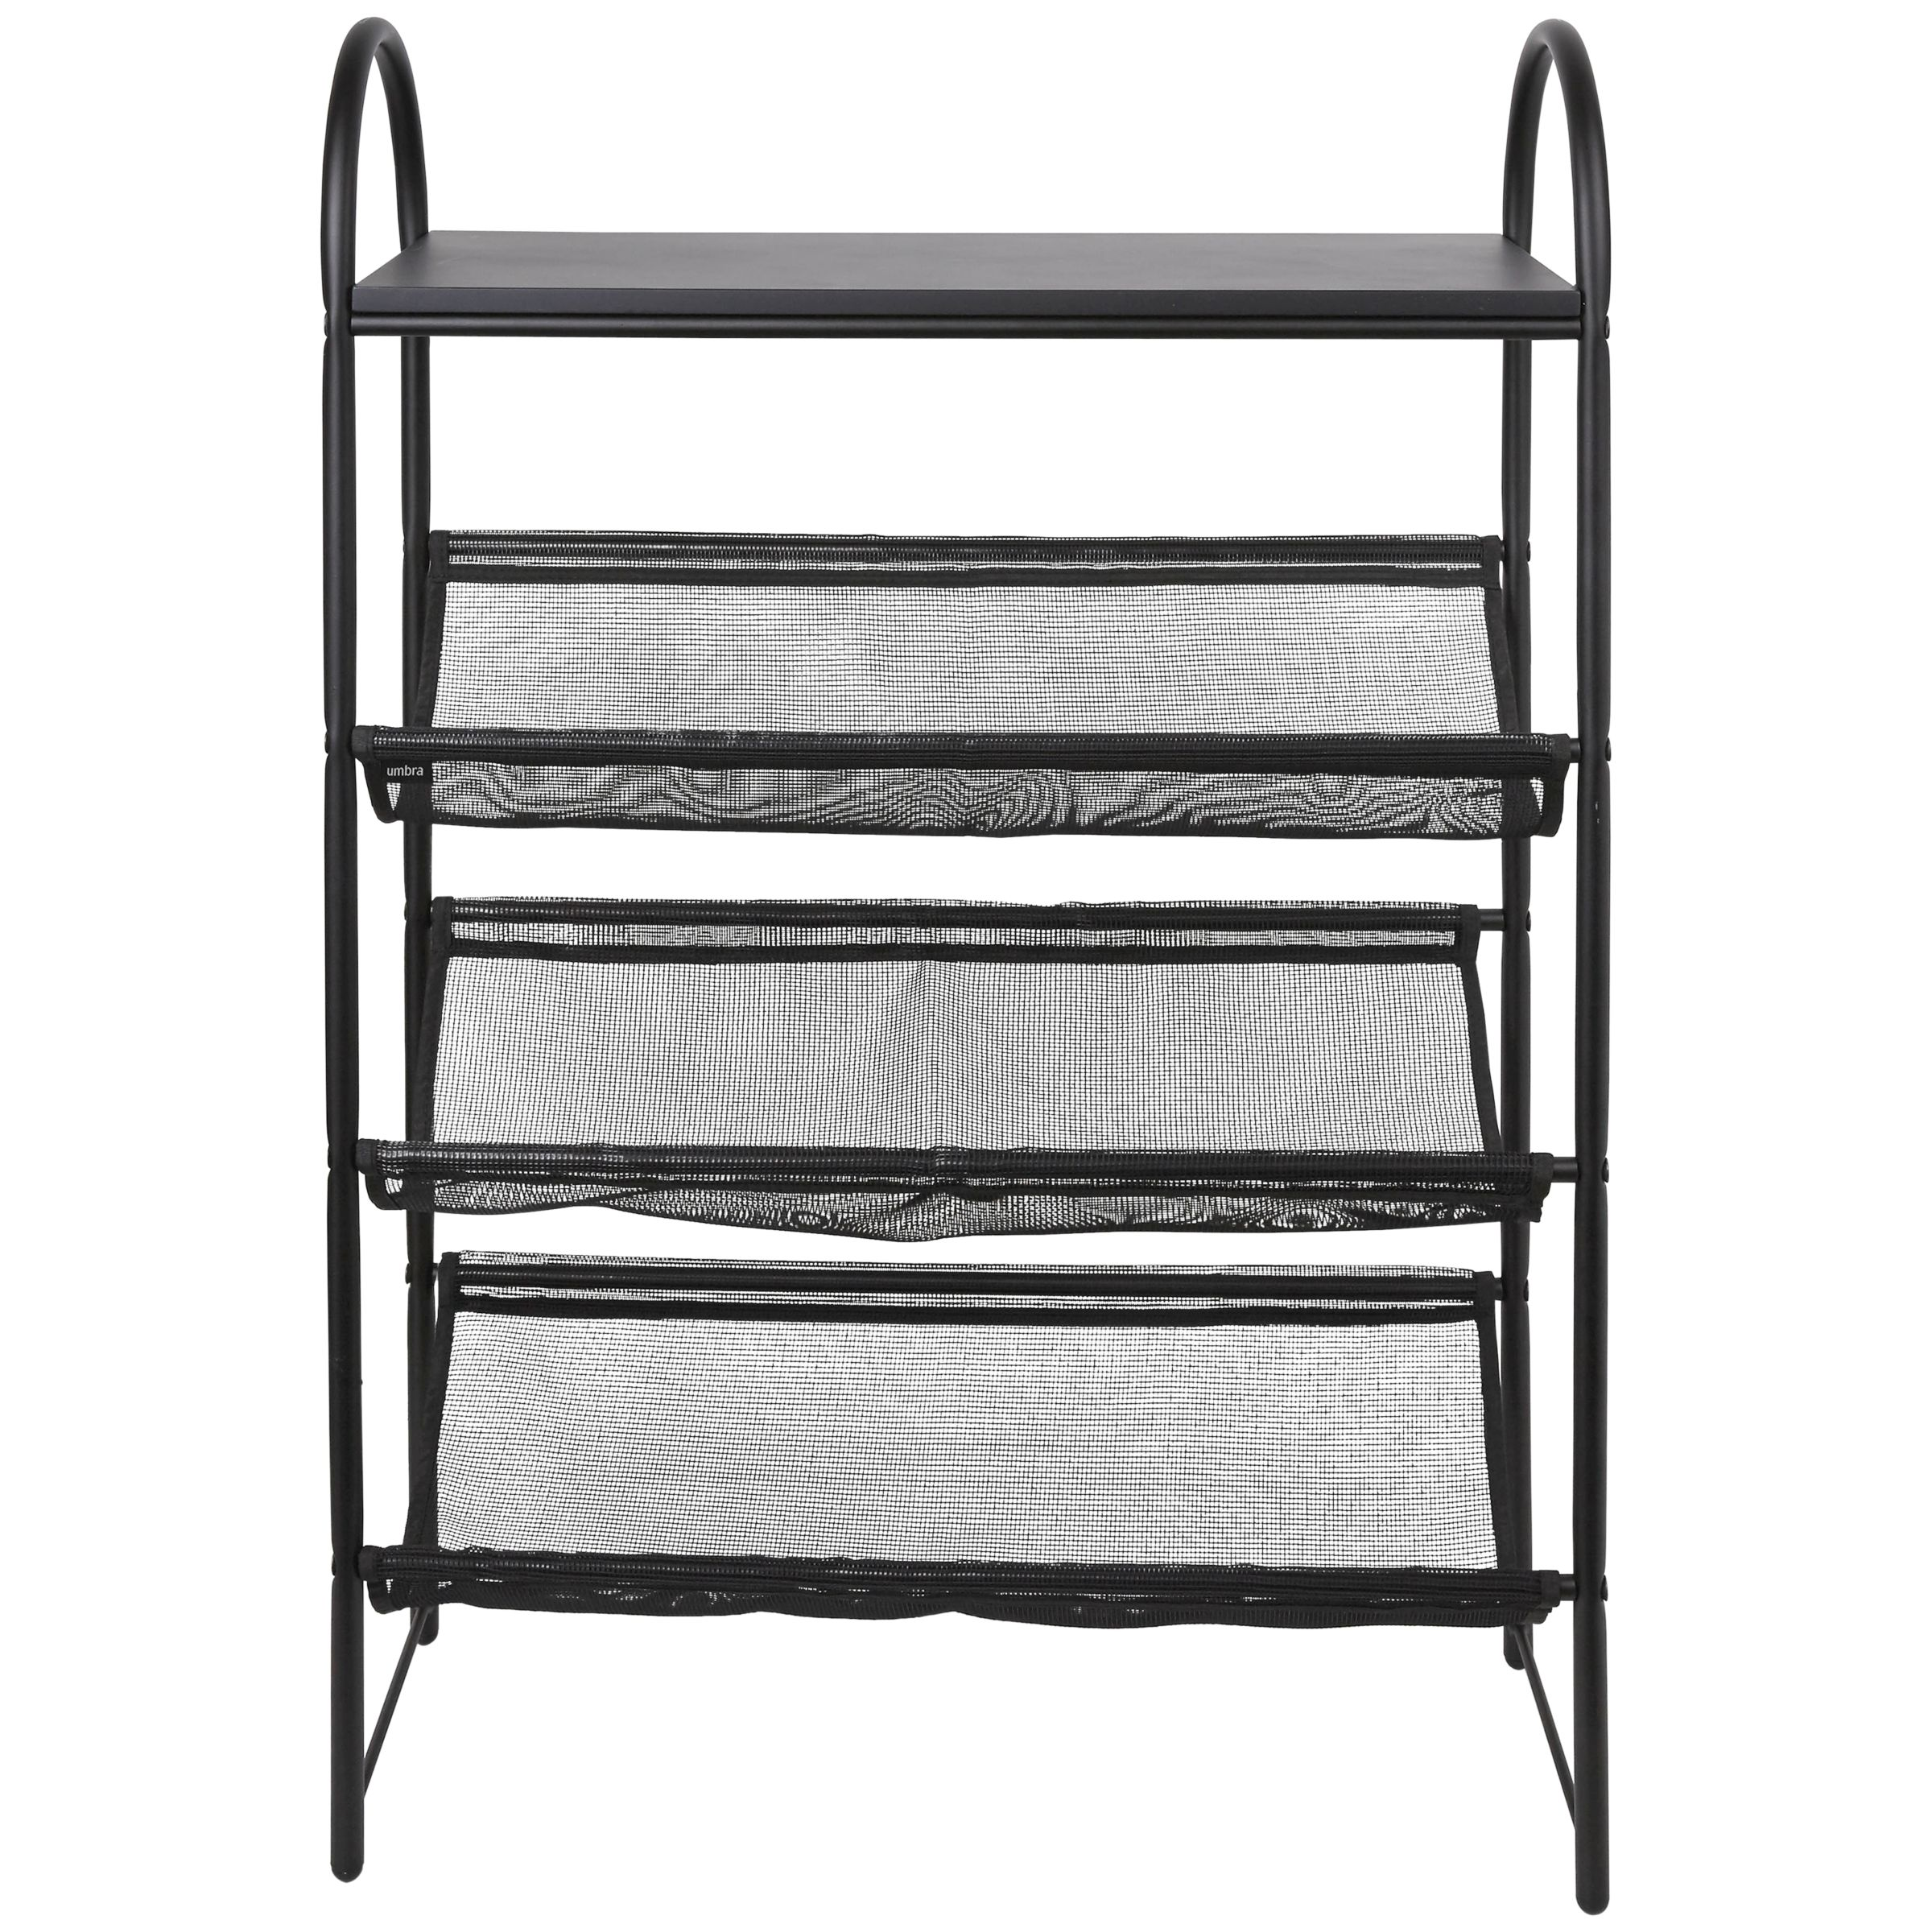 Umbra Umbra Cache Shoe Rack with Console Table